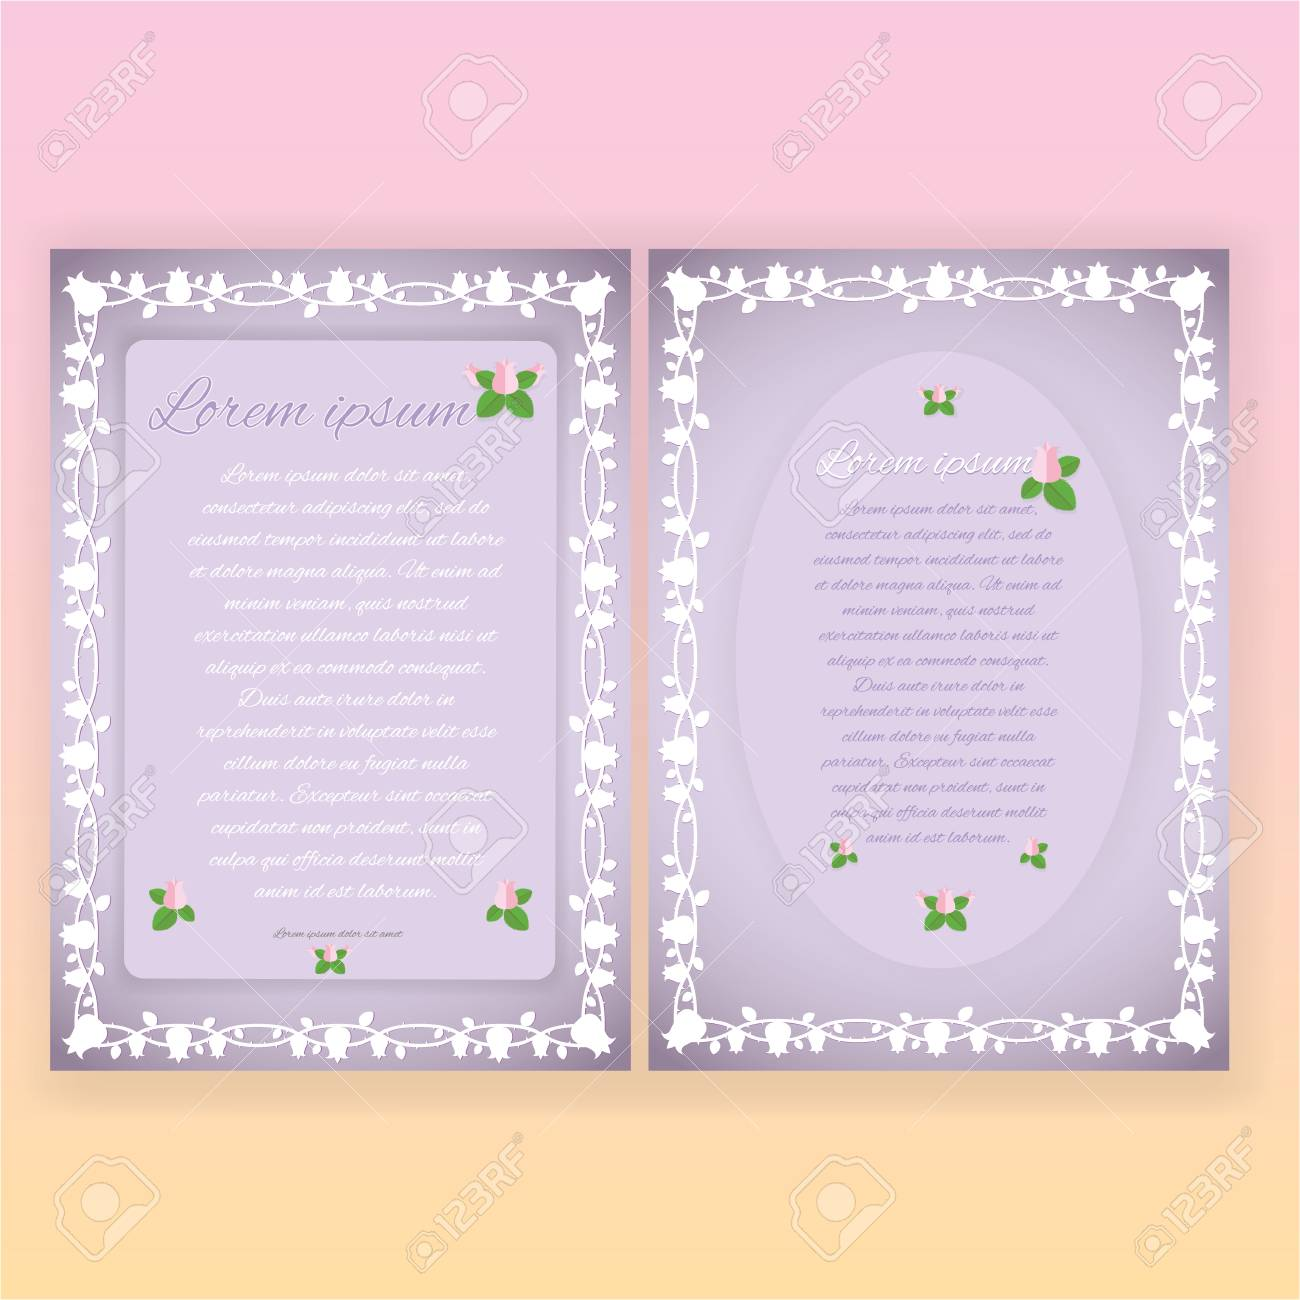 Floral Borders Two Page Templates For Web And Print Tulip Patterns